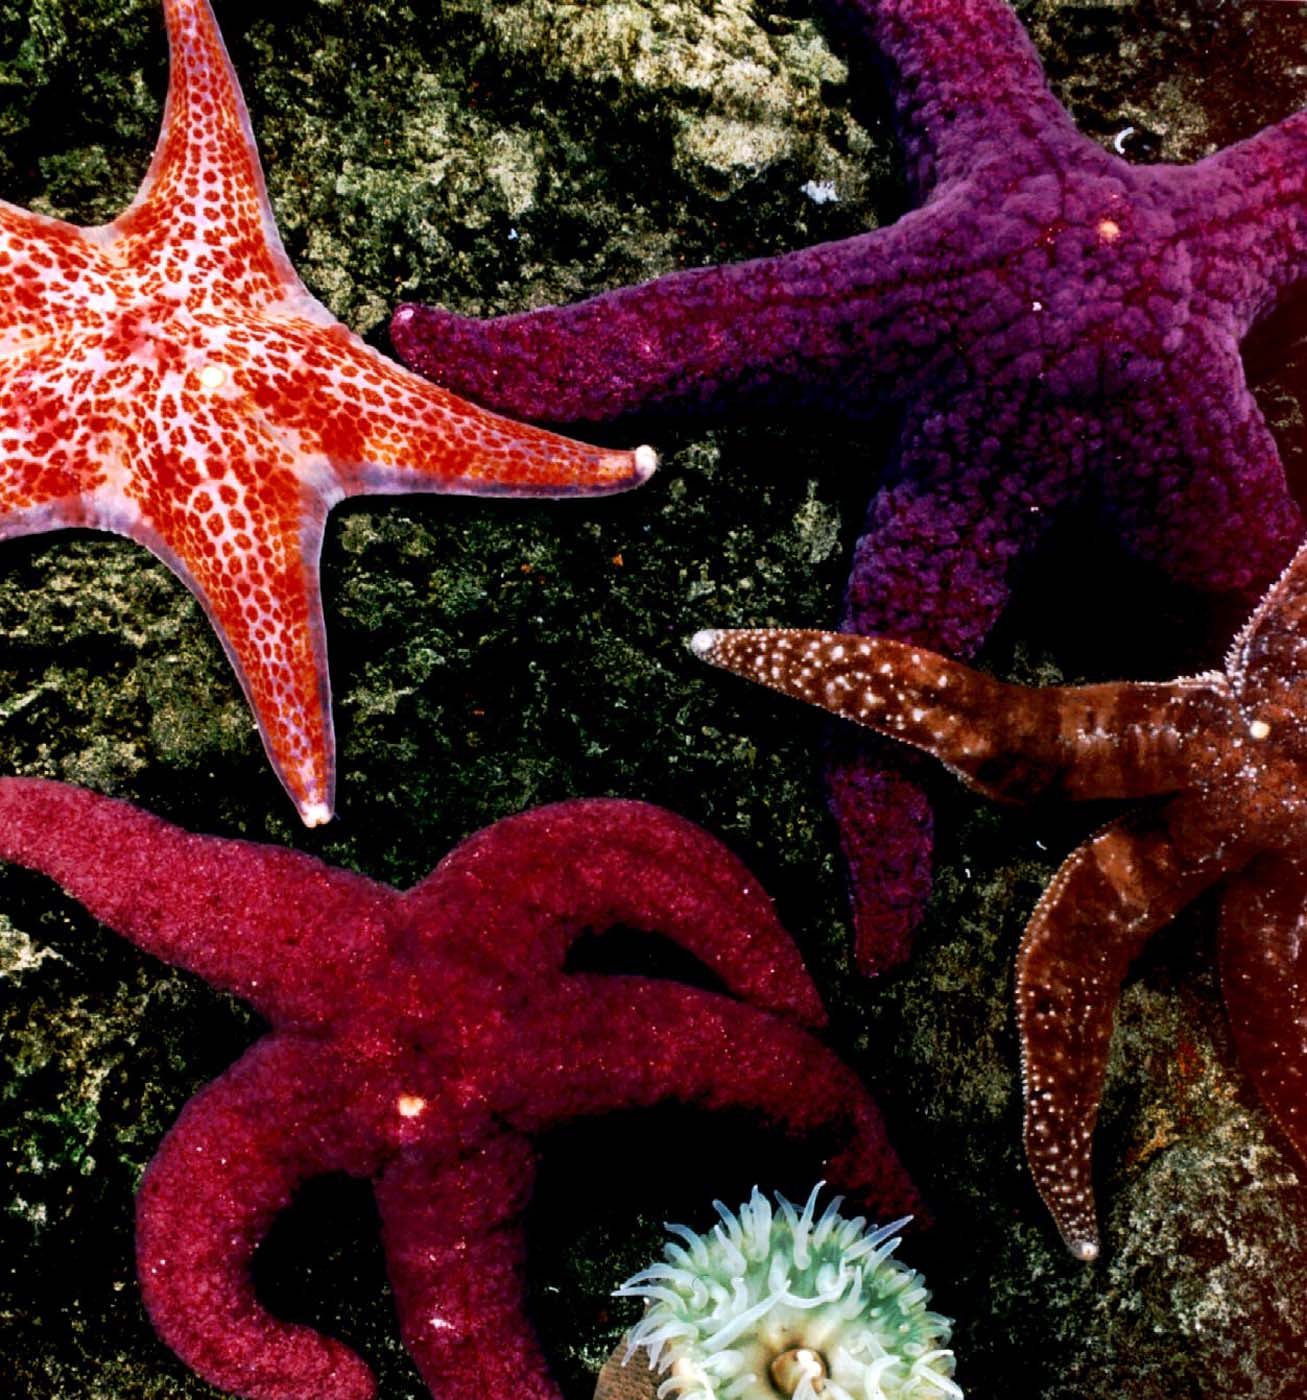 A Starry, Starry Sight! Sea stars at the National Aquarium in Baltimore. (Credit: George Grall)